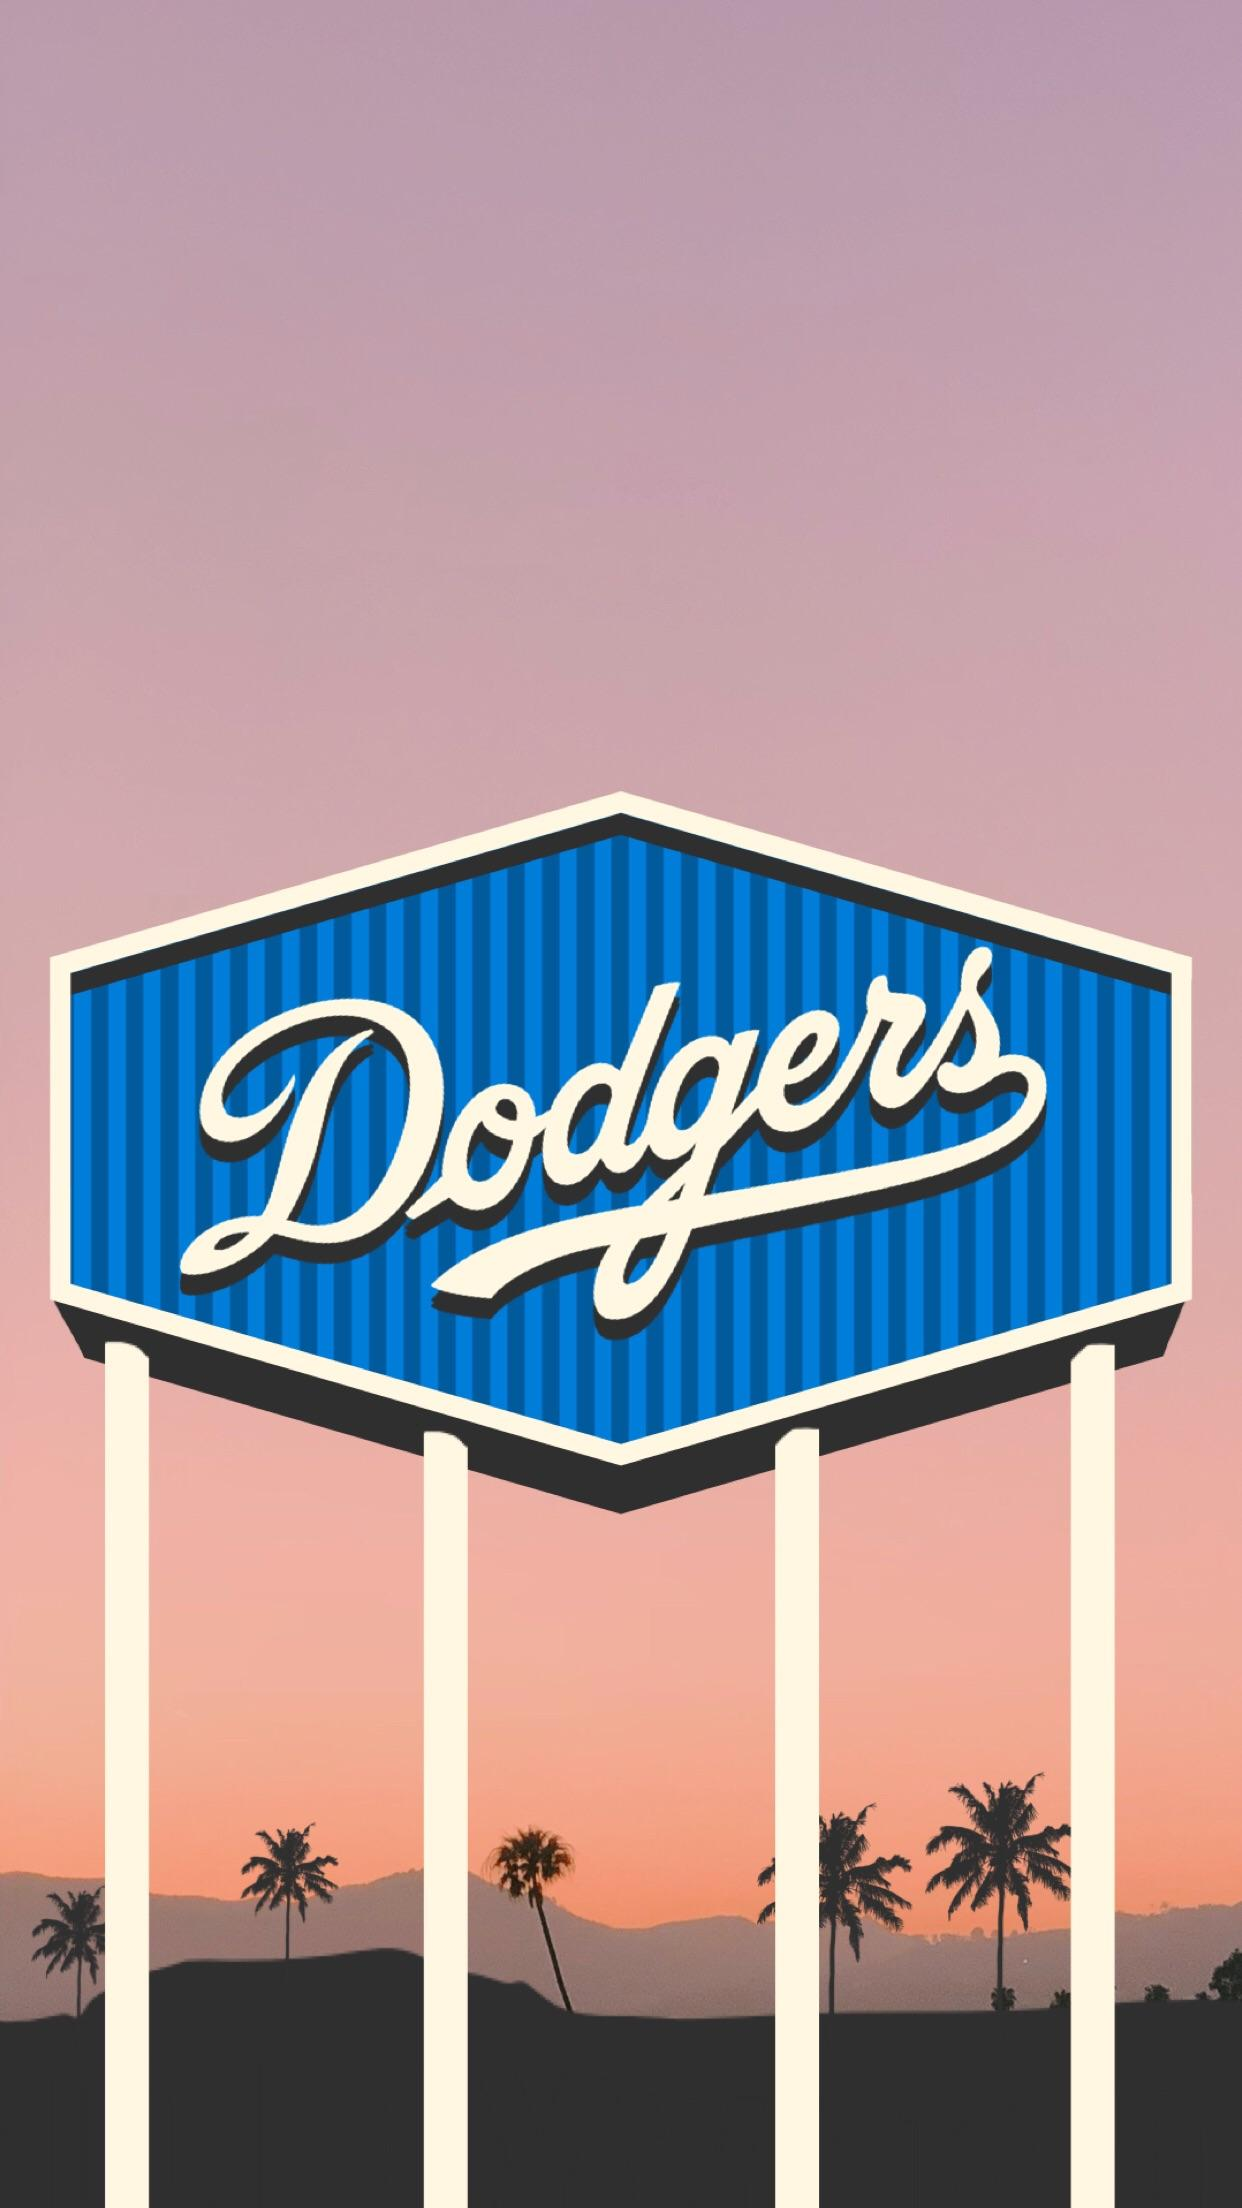 La Dodgers Iphone Wallpaper Posted By Samantha Simpson